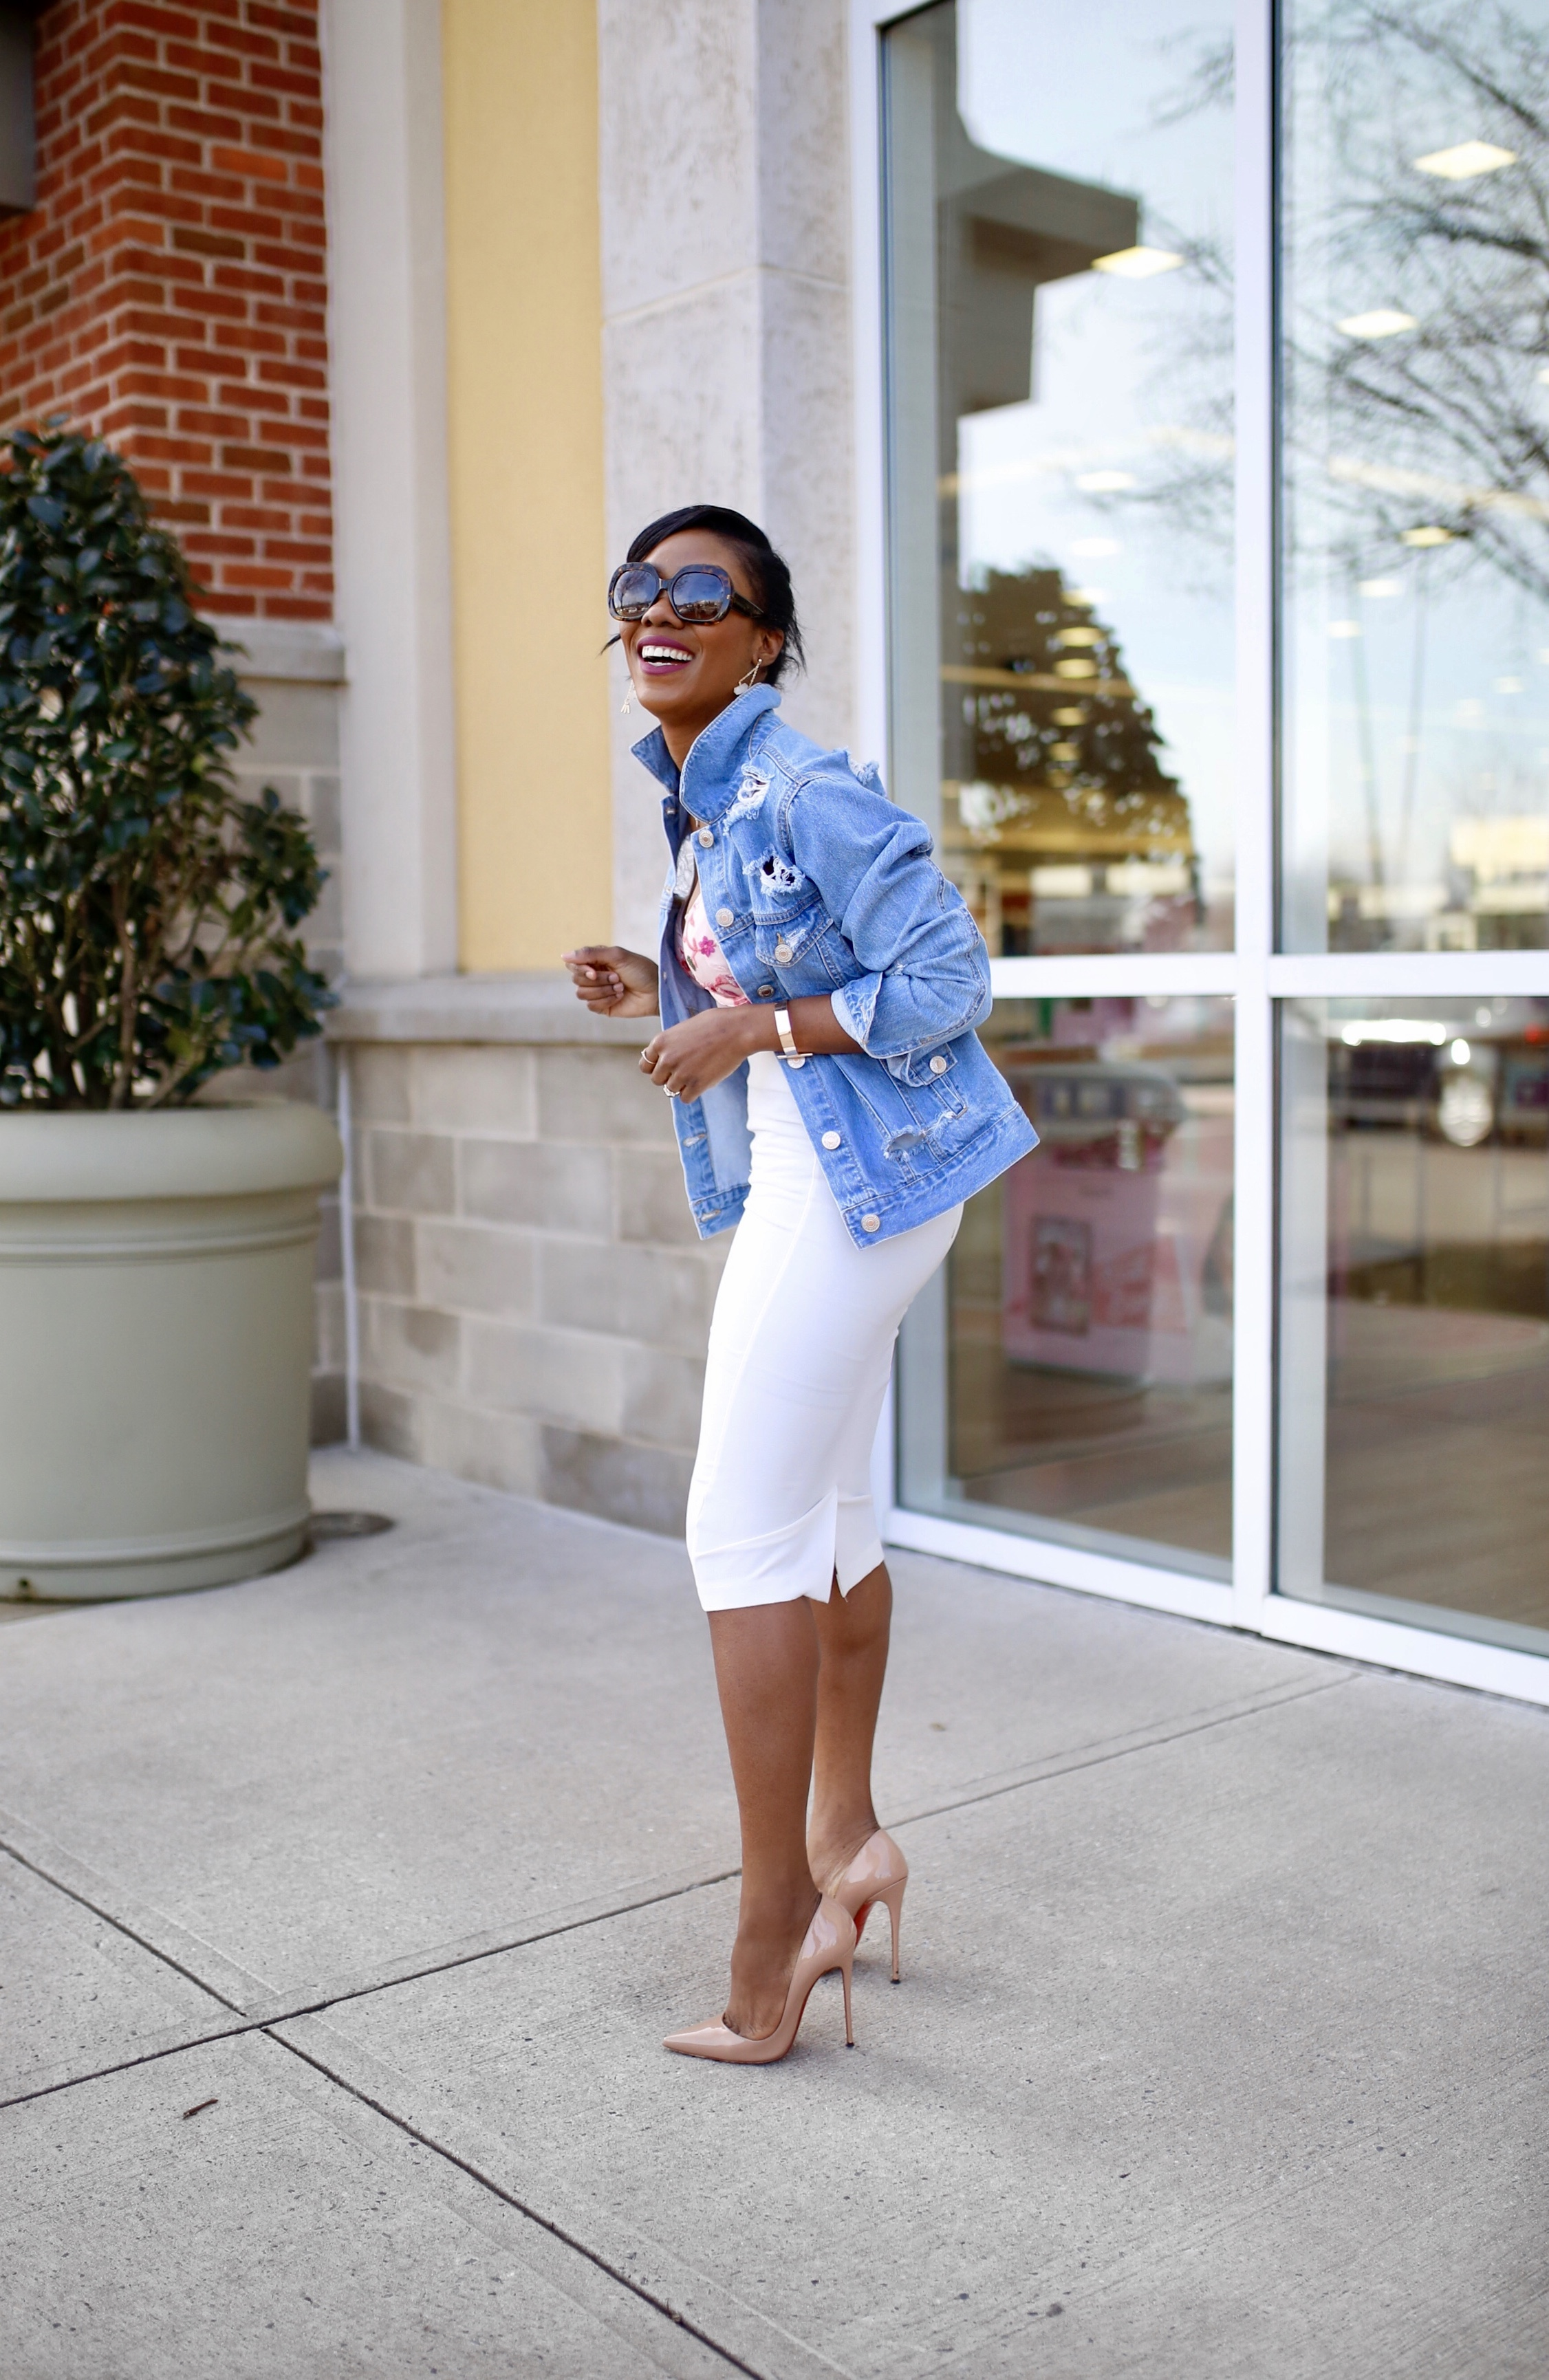 How to wear a denim jacket without looking frumpy! You'd love these three stylish ways. And guess what? You can recreate this style with pieces from your closet.